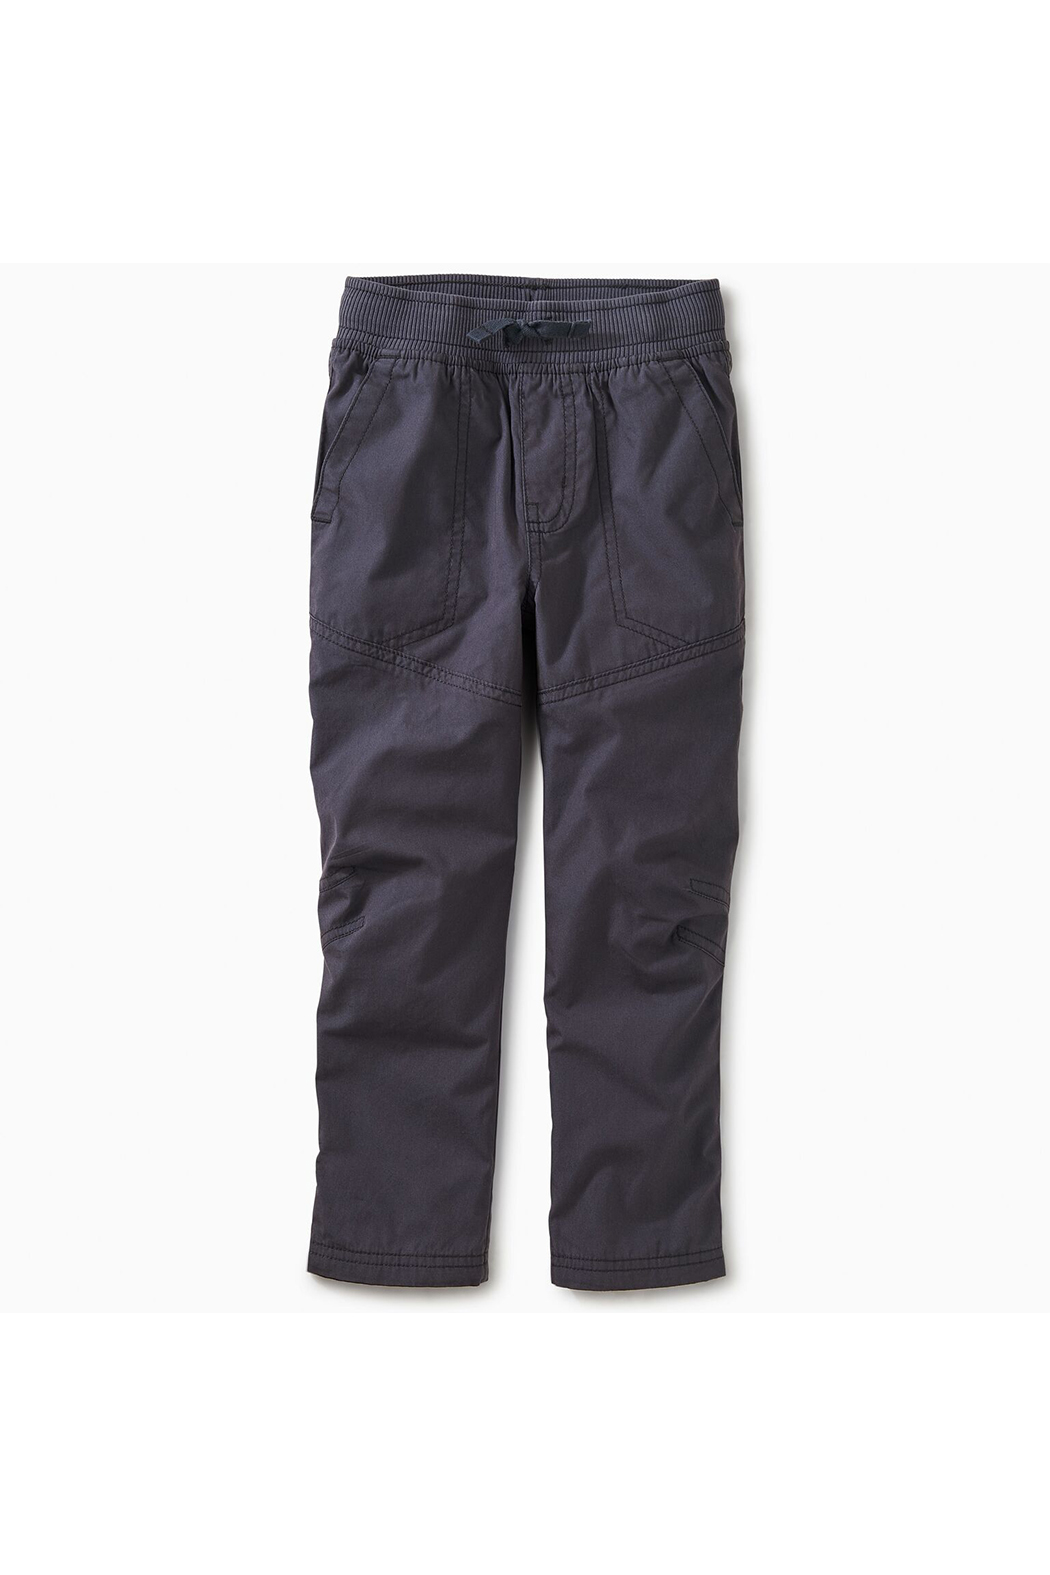 Tea Collection Jersey-Lined Pants - Main Image